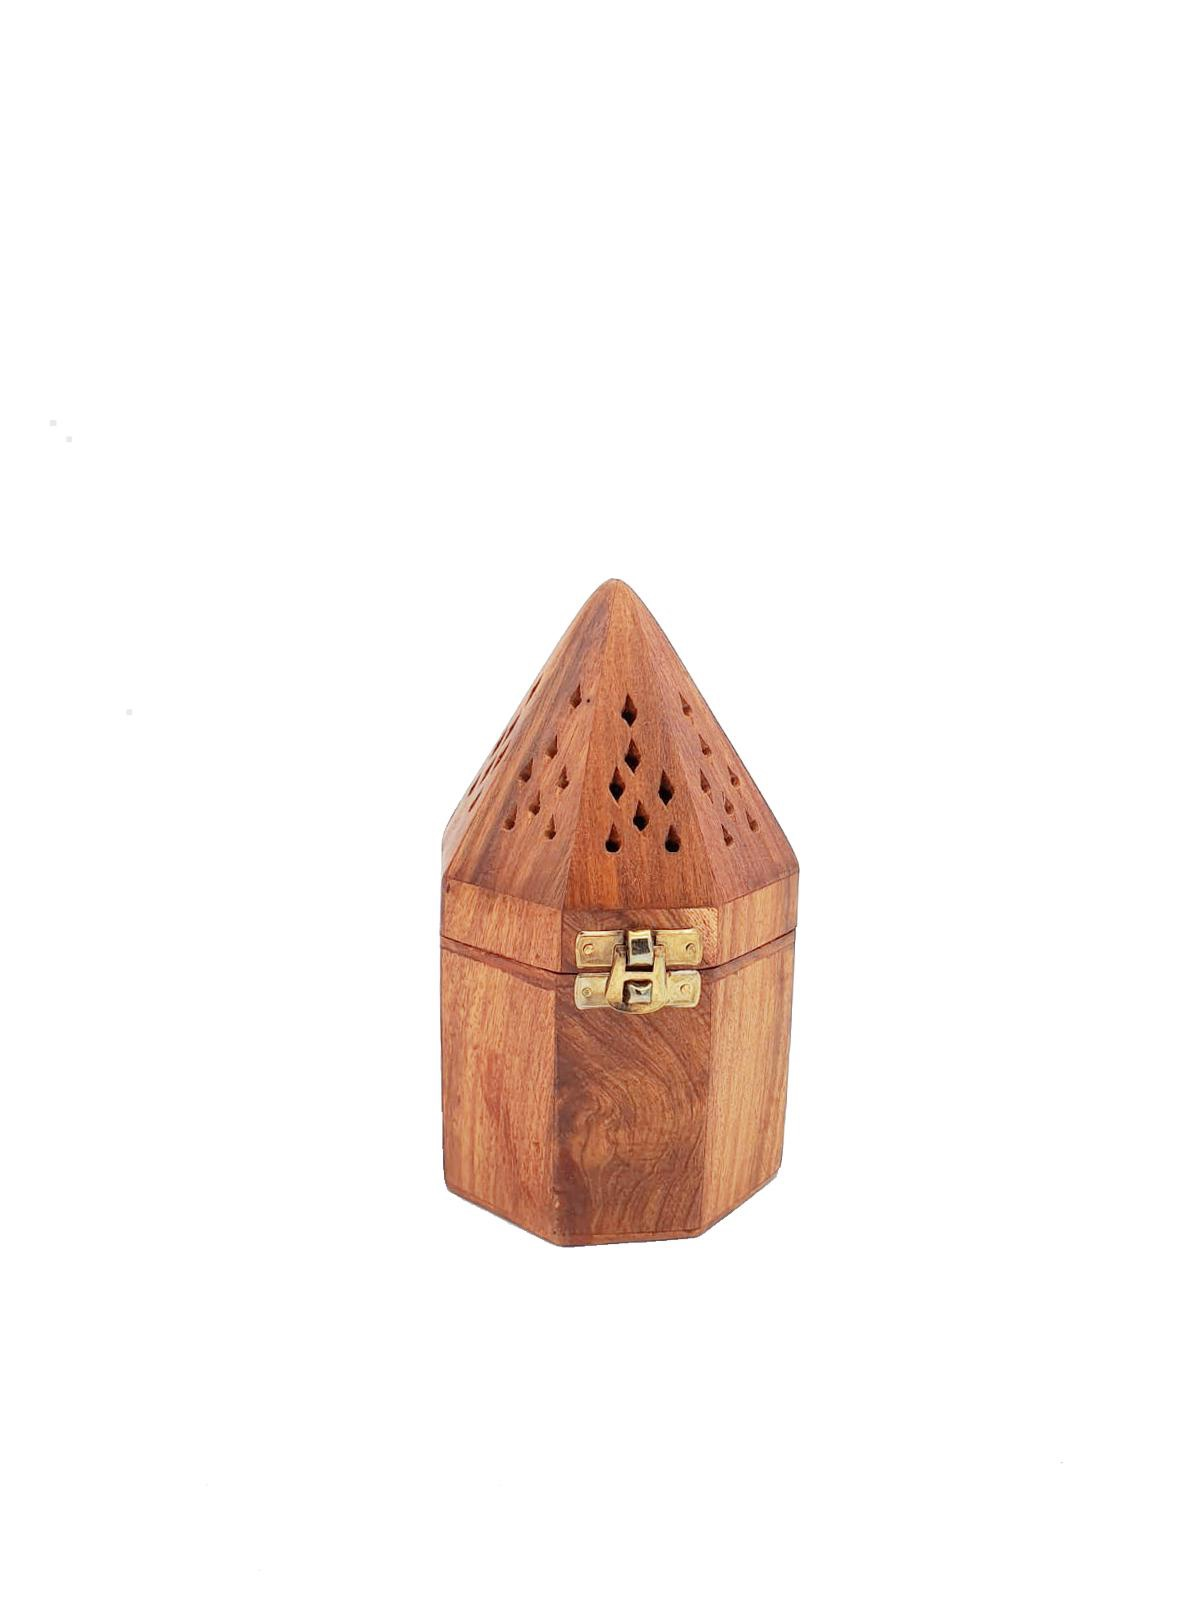 Buy Wooden Cone Incense Burner - Small